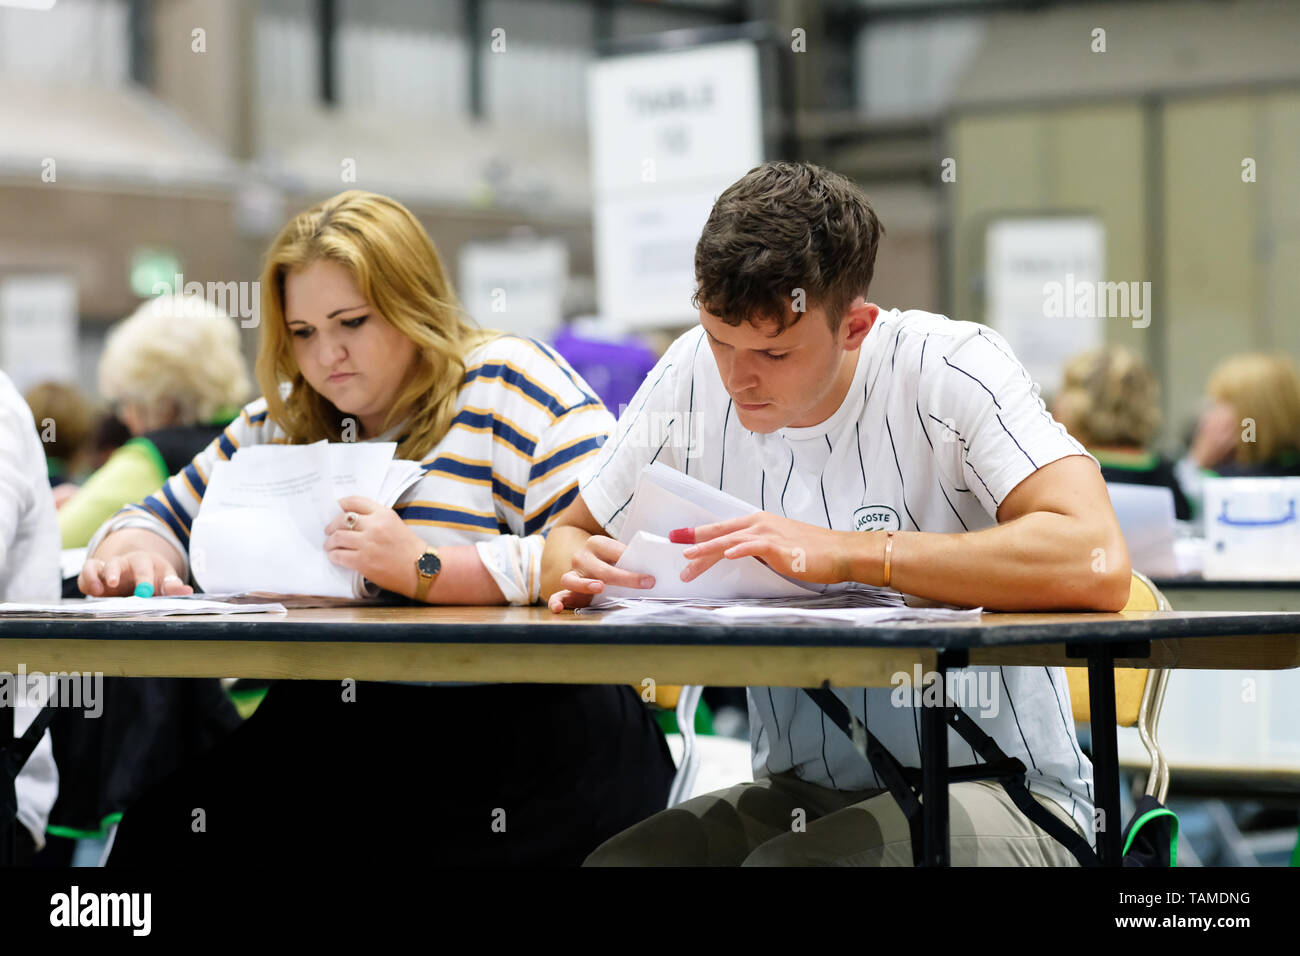 Hereford, UK. 26th May, 2019. Election staff count ballot papers in Hereford as part of the UK wide European Elections - The Hereford votes are part of the West Midlands region and will return 7 MEPs - overall the UK will return 73 MEPs to the European Parliament. Credit: Steven May/Alamy Live News - Stock Image